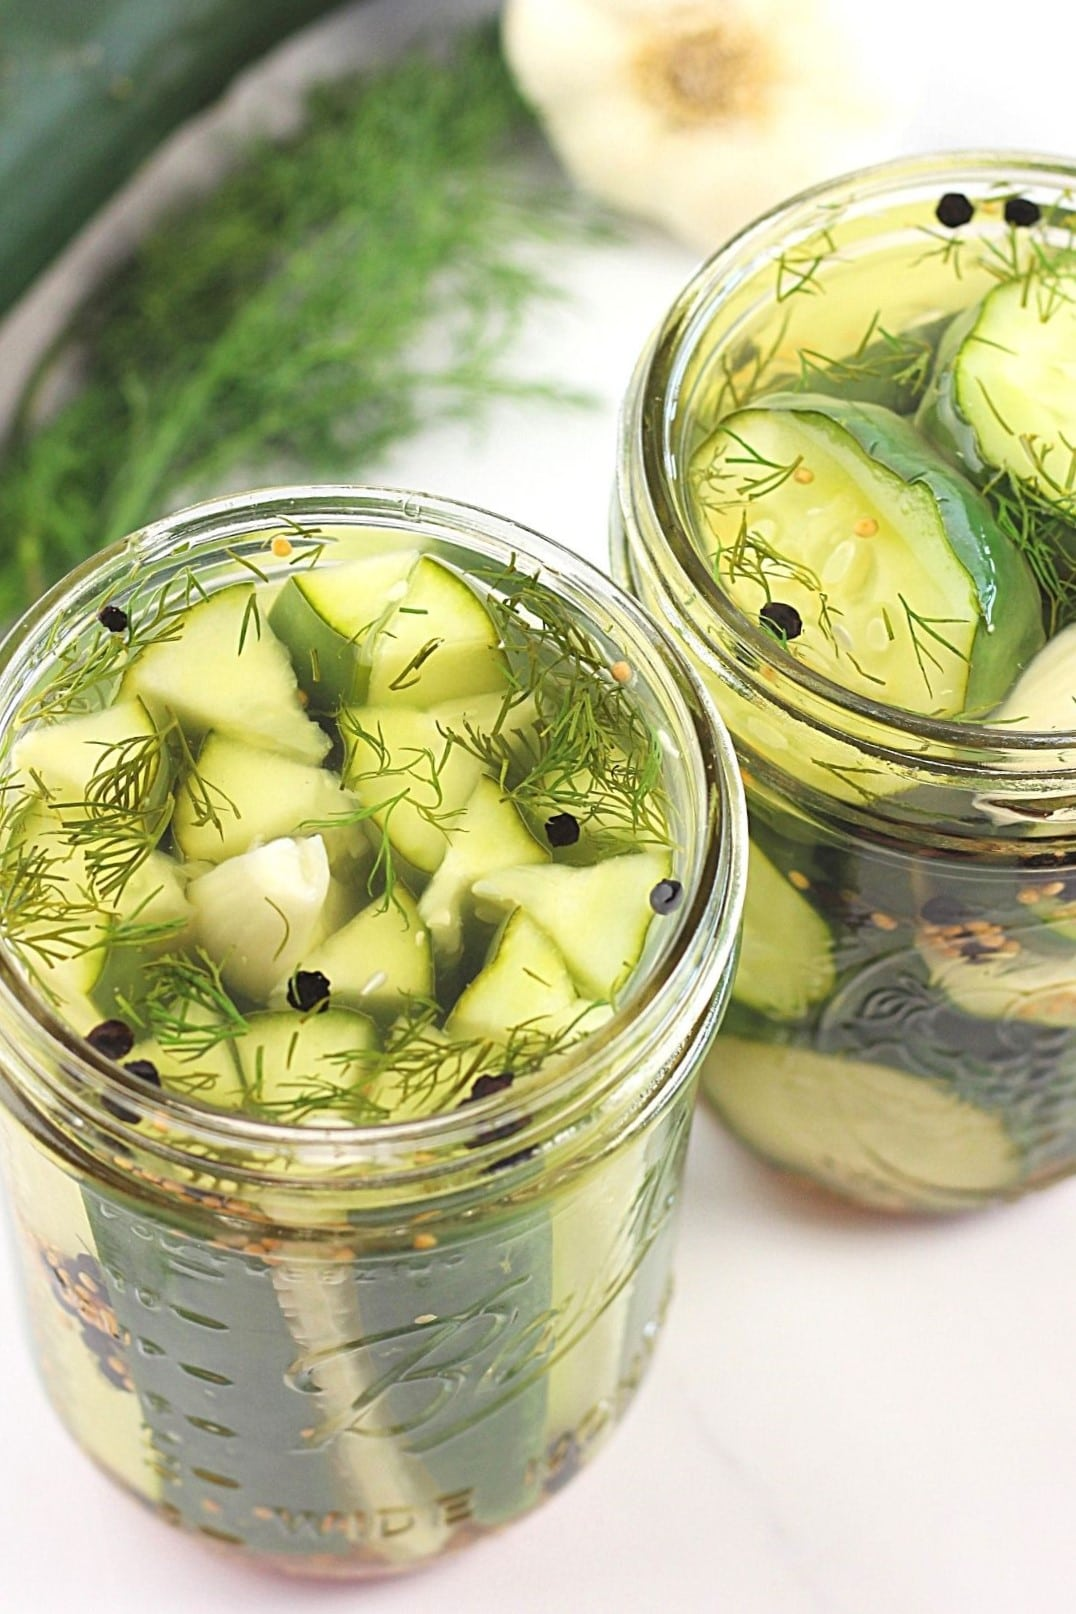 2 jars of garlic and dill 24-hour refrigerator pickles, one that is pickle spears, the other slices, with a cucumber, fresh dill, and garlic in the background